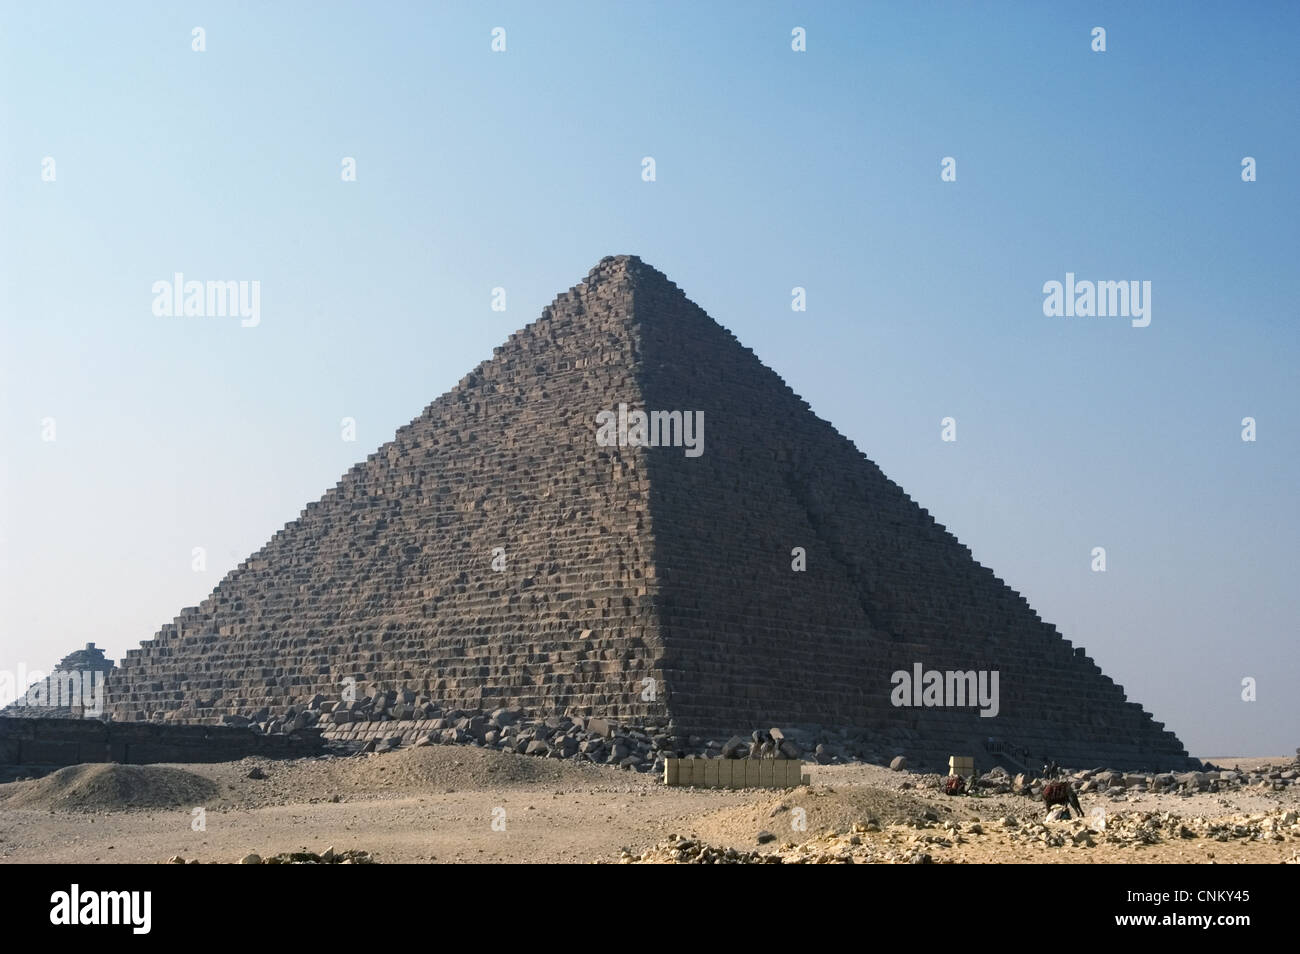 Egypt. The Great Pyramid of Gi...